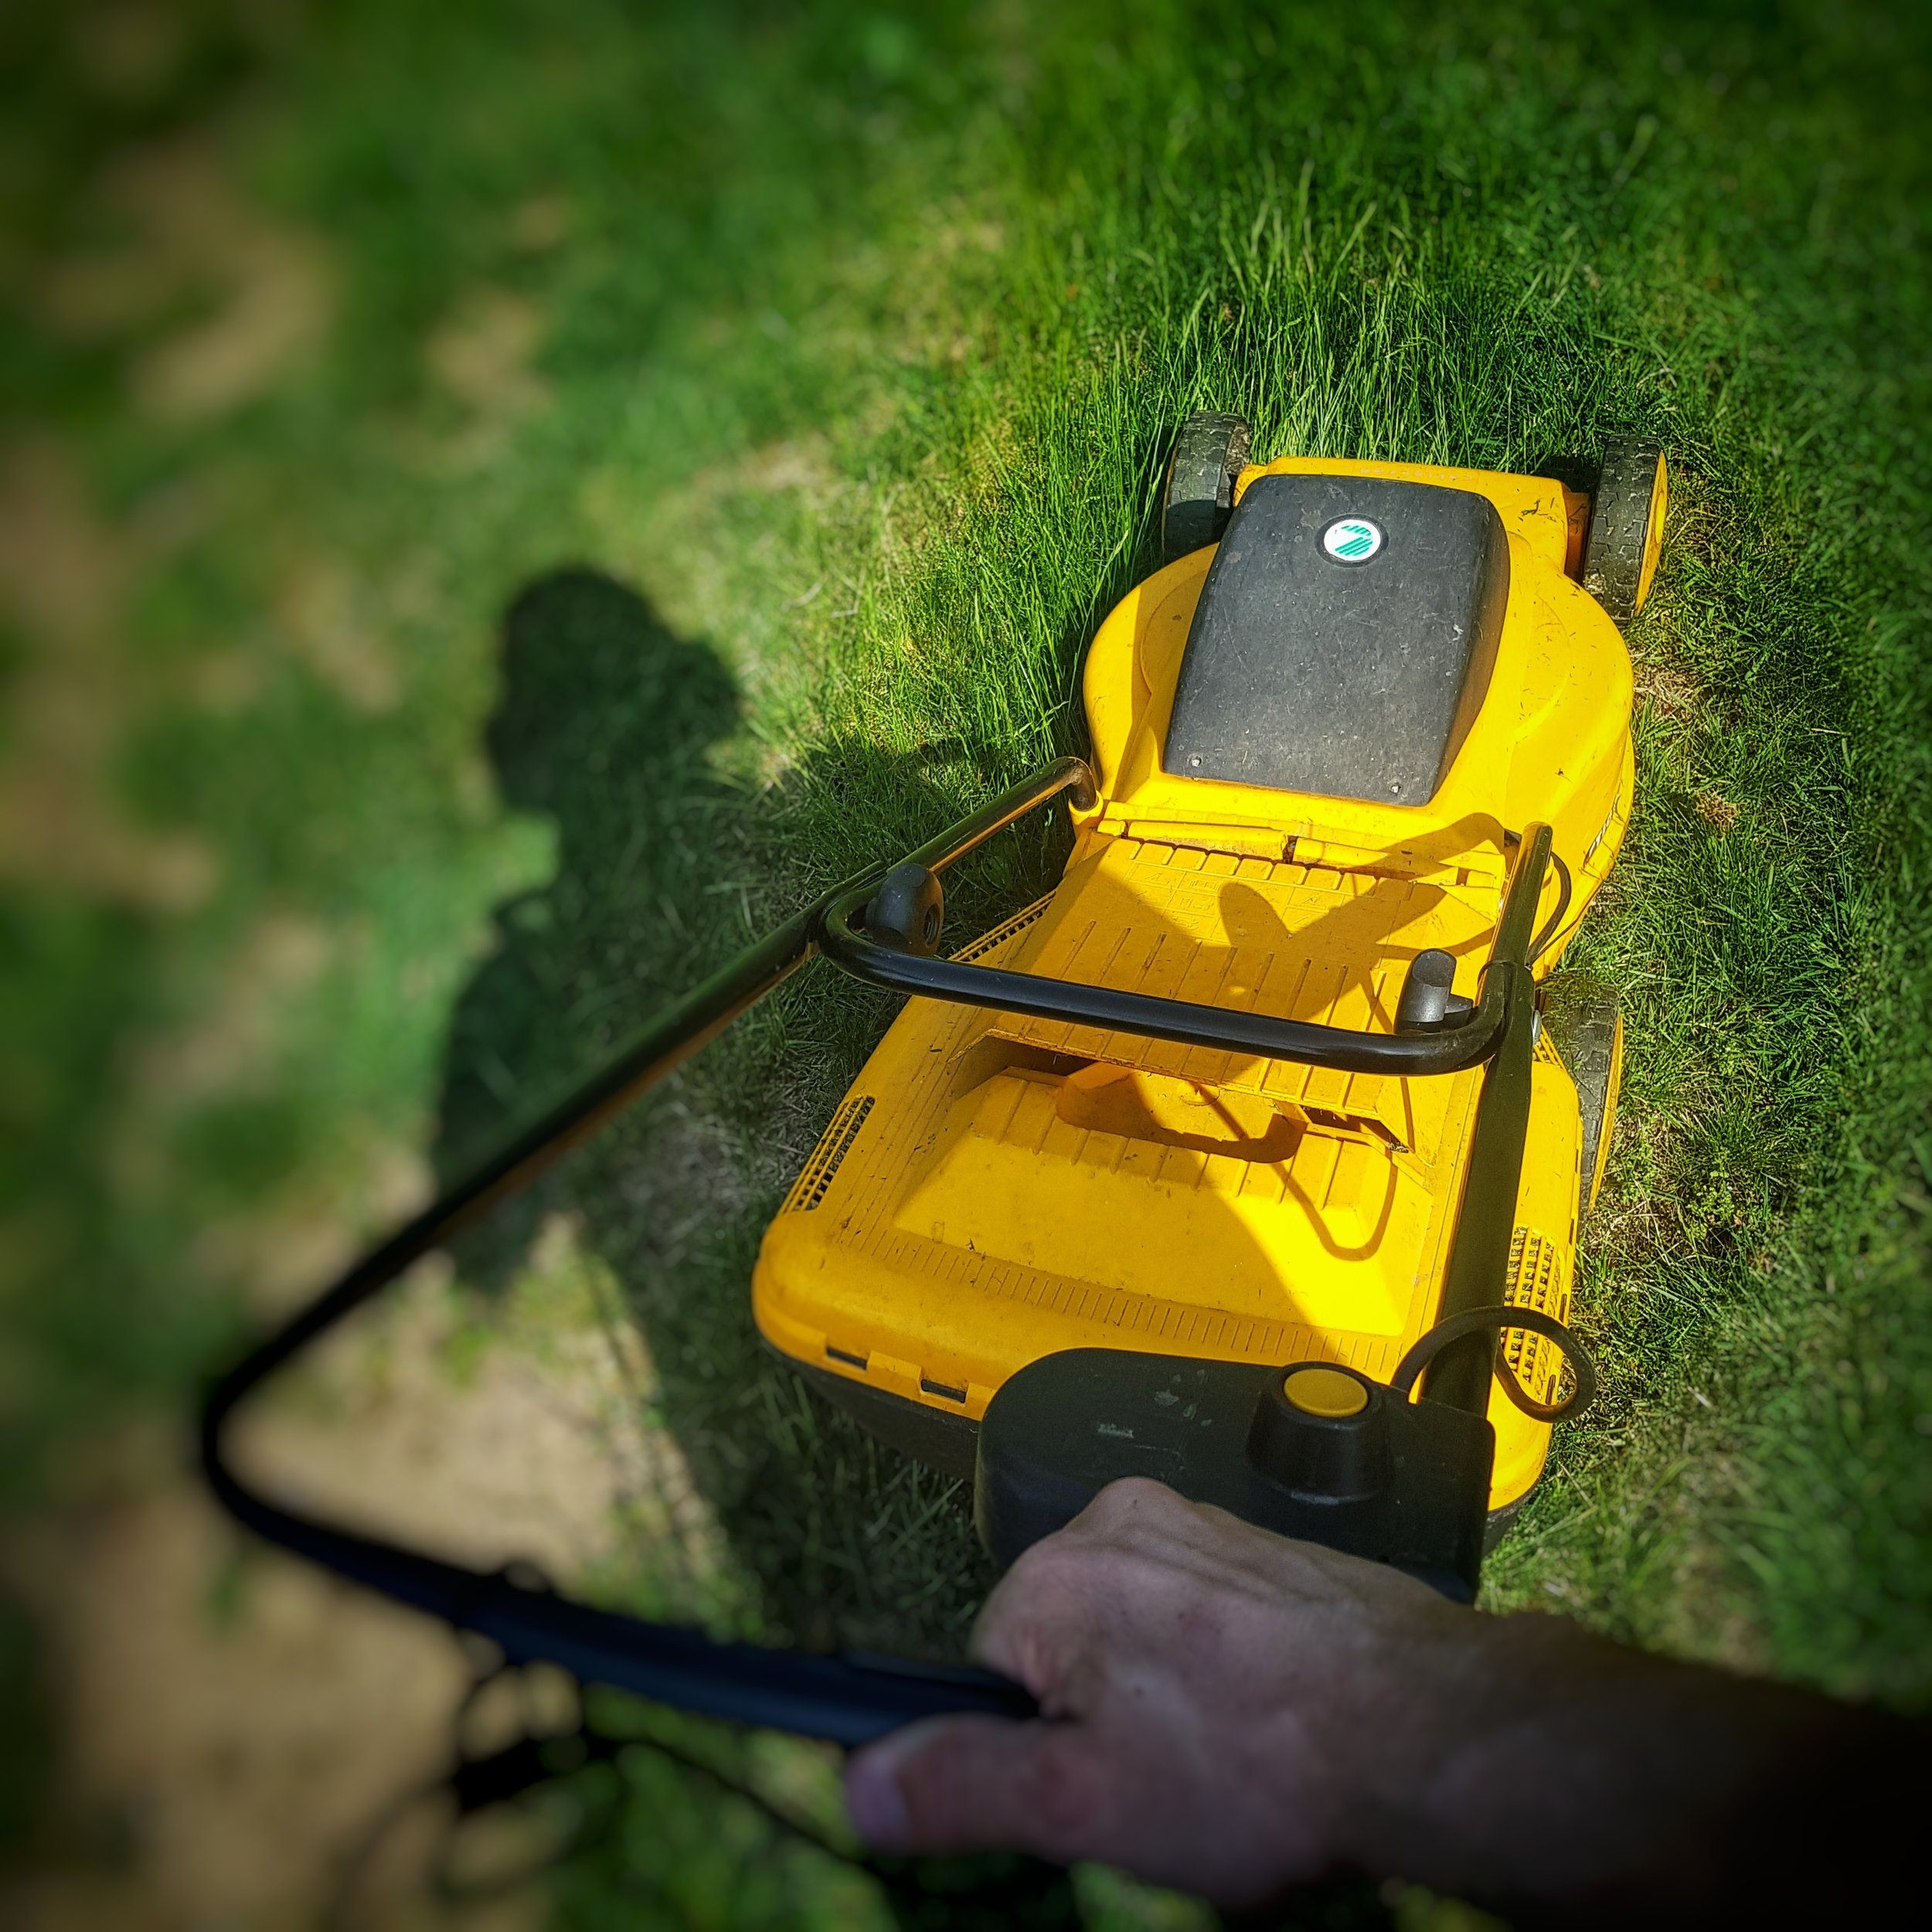 Day 143 - May 23: Mowing the meadow